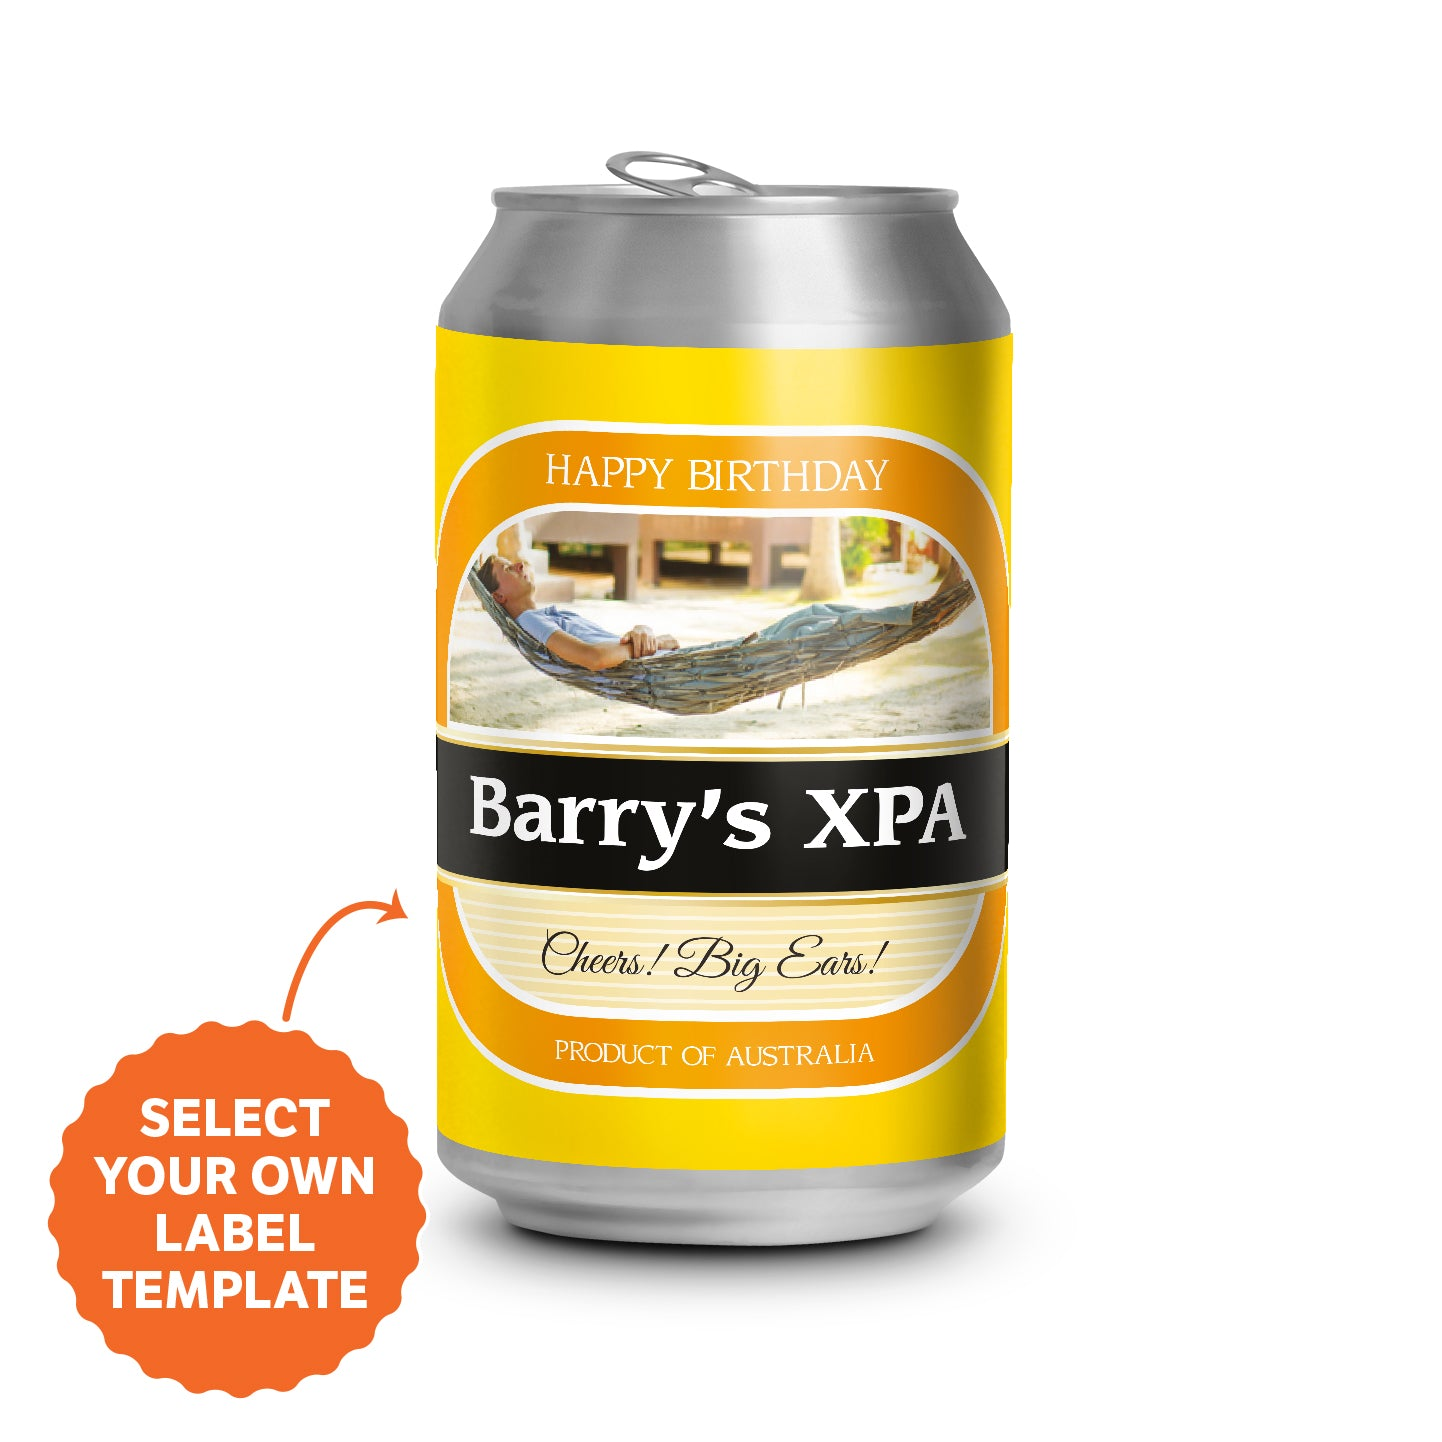 XPA Cans 5.3% - 375ml - 6 Pack